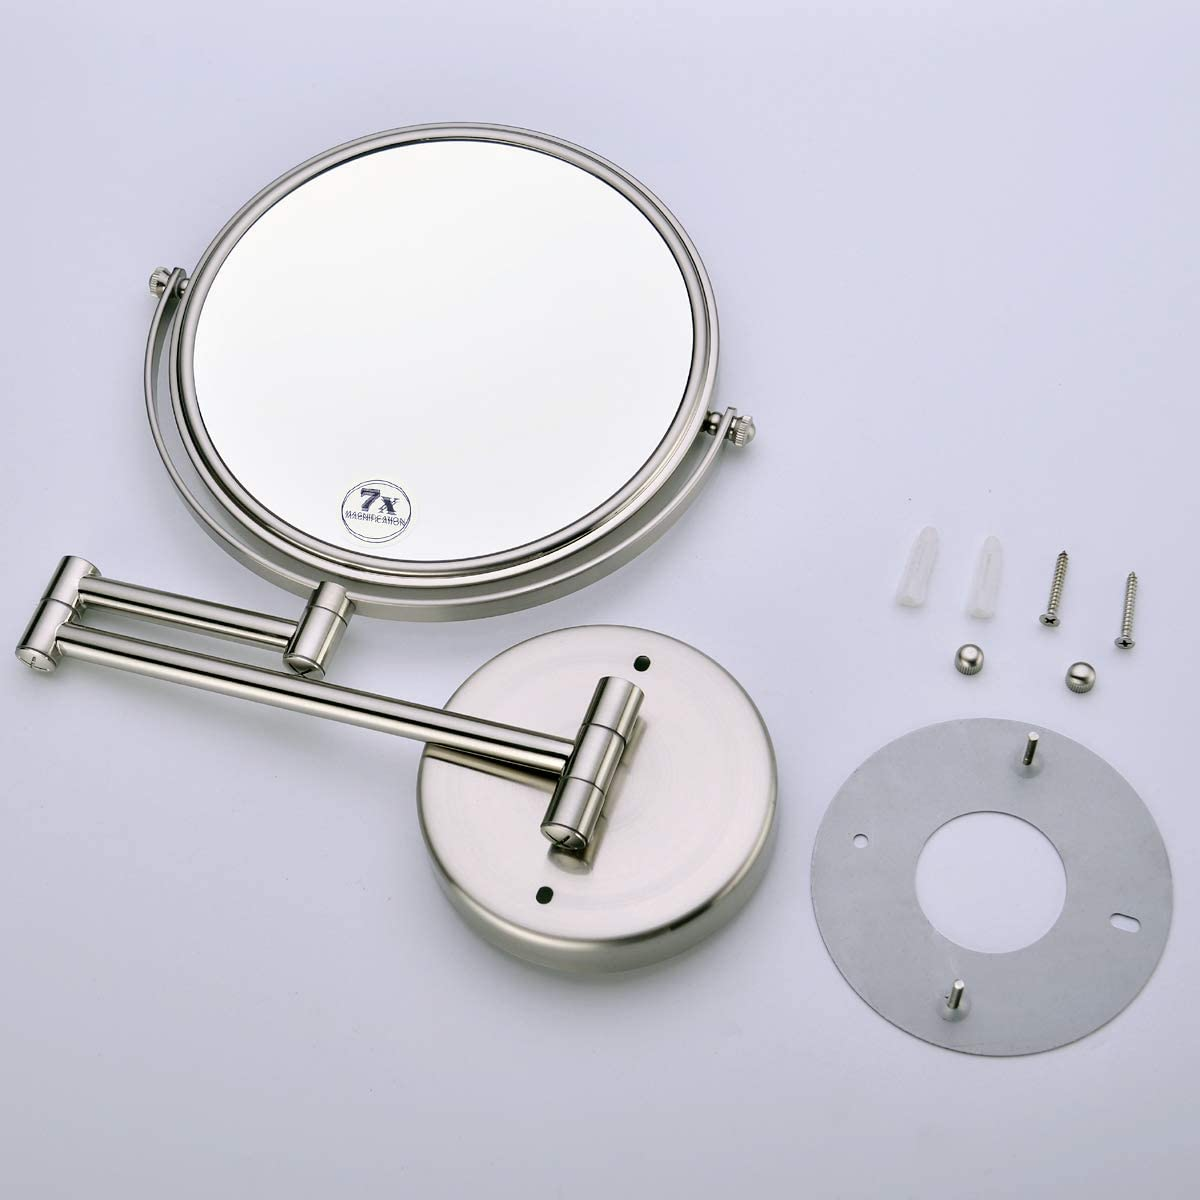 Brushed Nickel Anpean Wall Mounted Makeup Mirror 10x Magnification with 8 Inch Two Sided Swivel